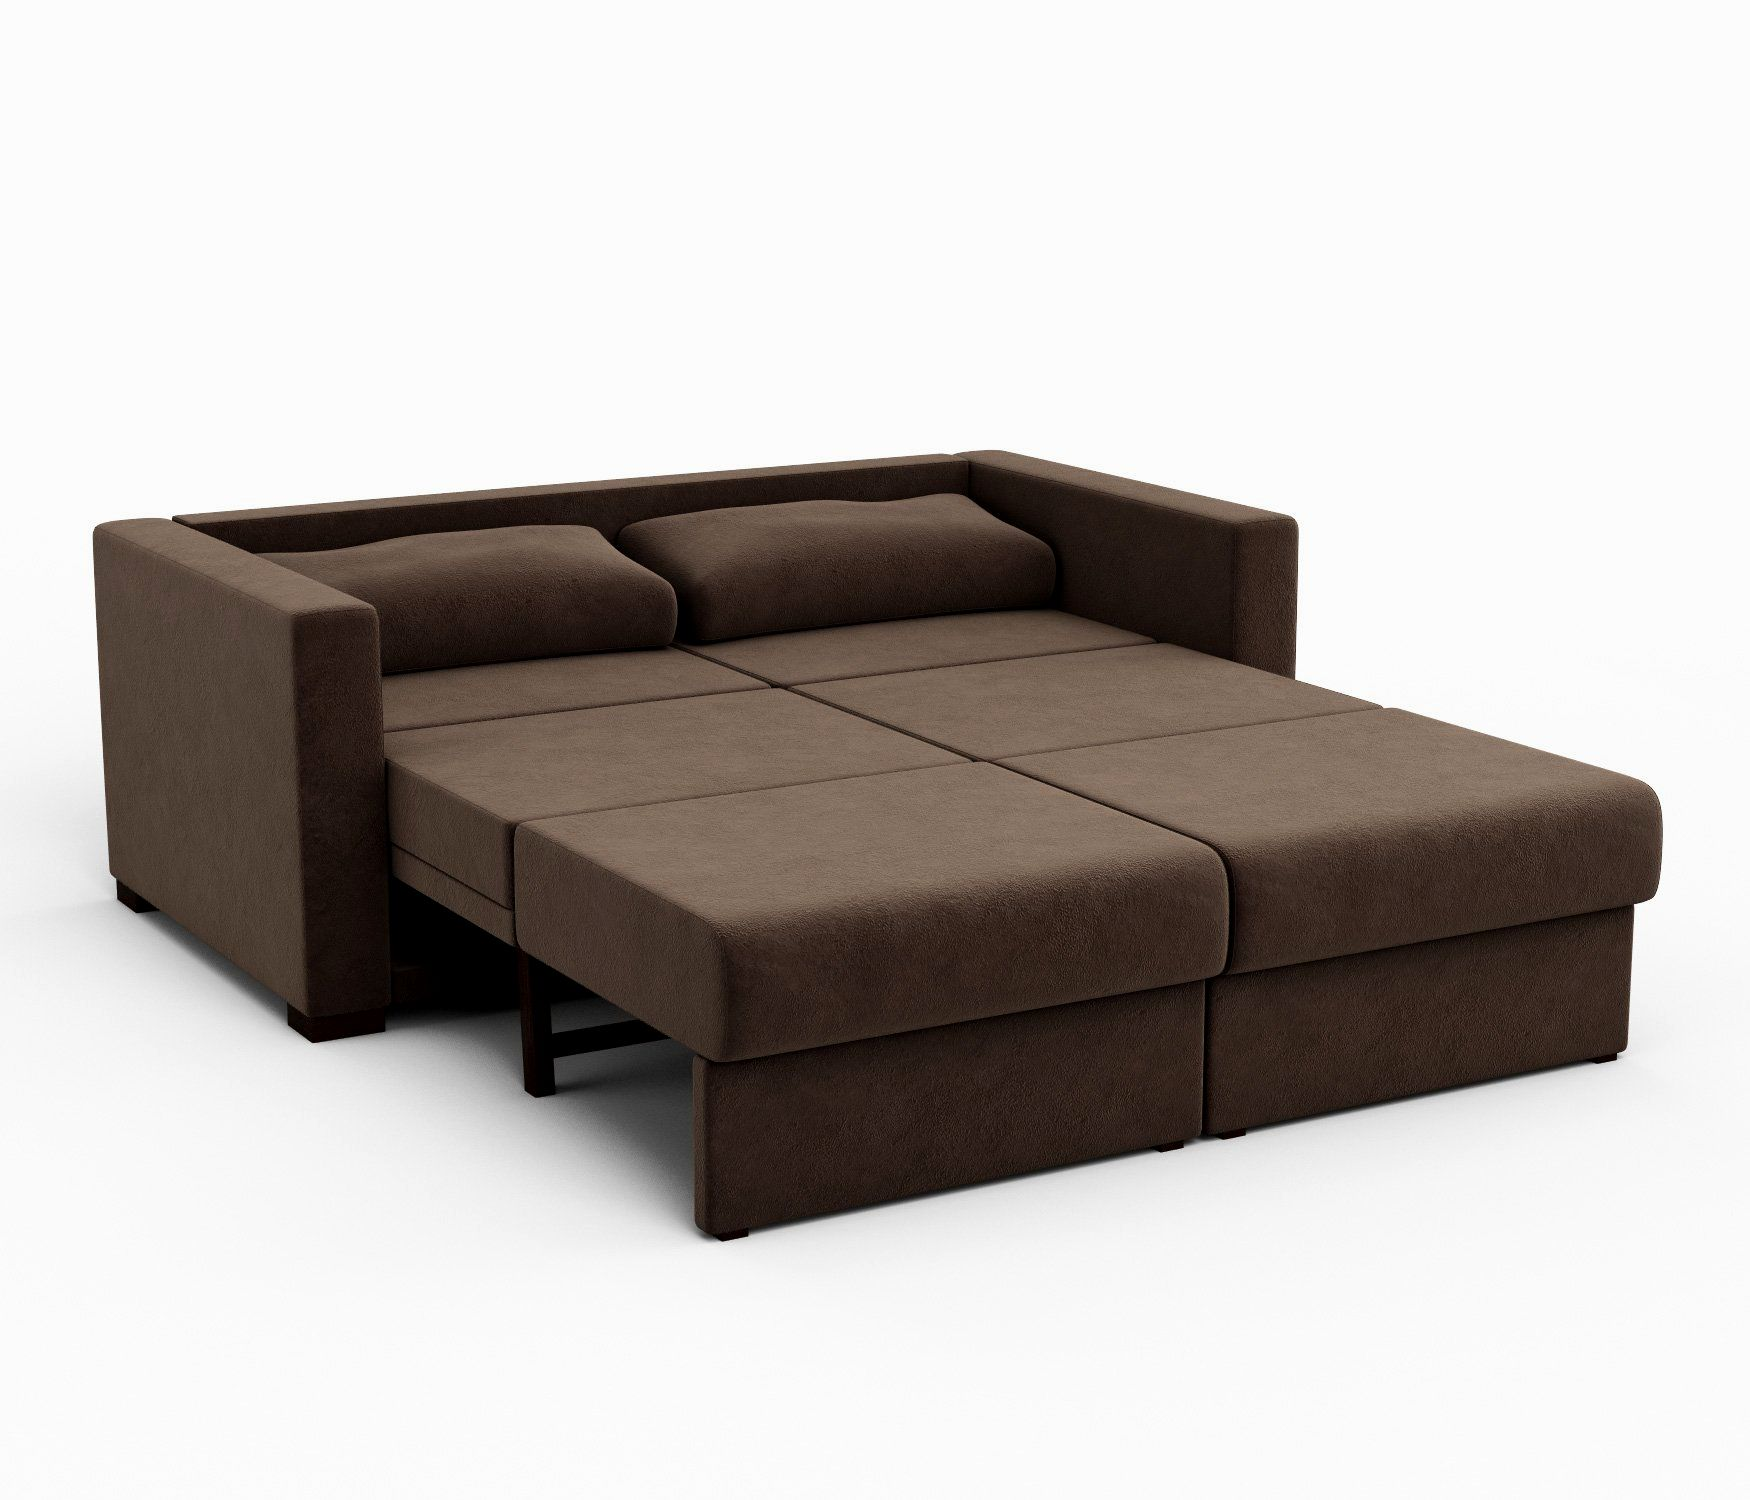 fancy apartment size sofa photo-Cute Apartment Size sofa Model